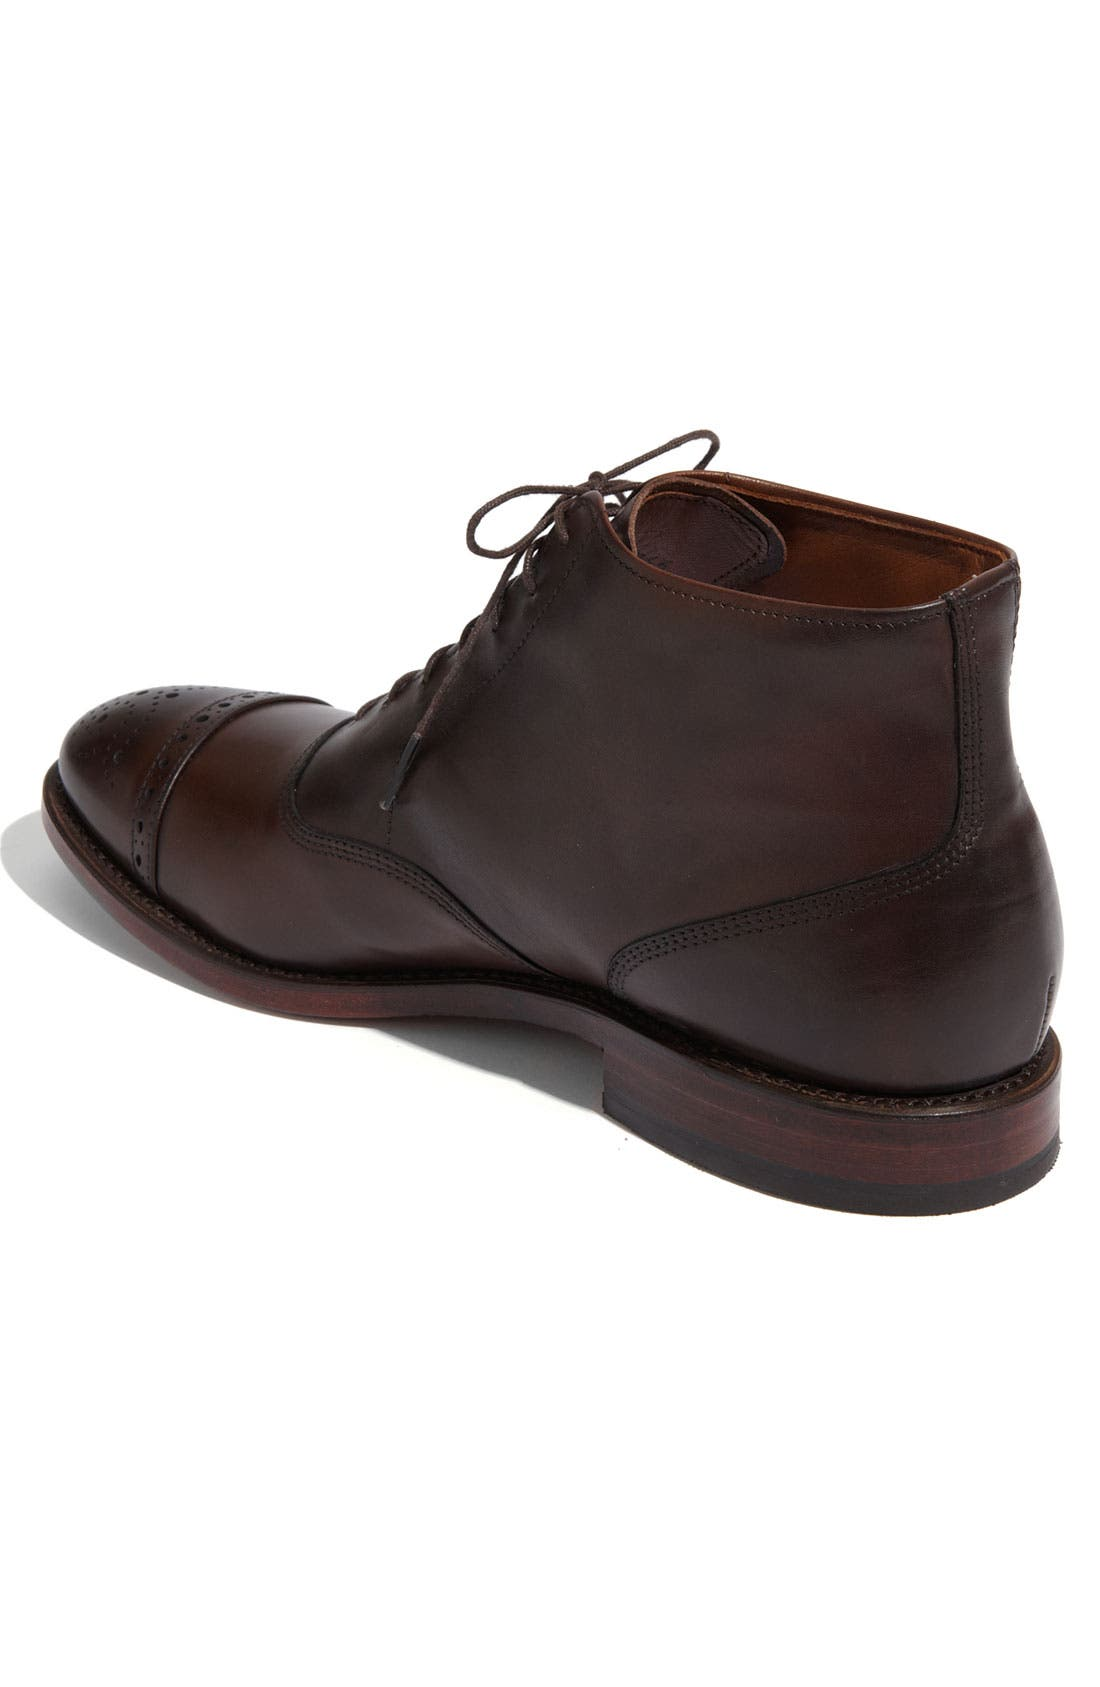 Alternate Image 2  - Allen Edmonds 'Fifth Street' Boot (Men)